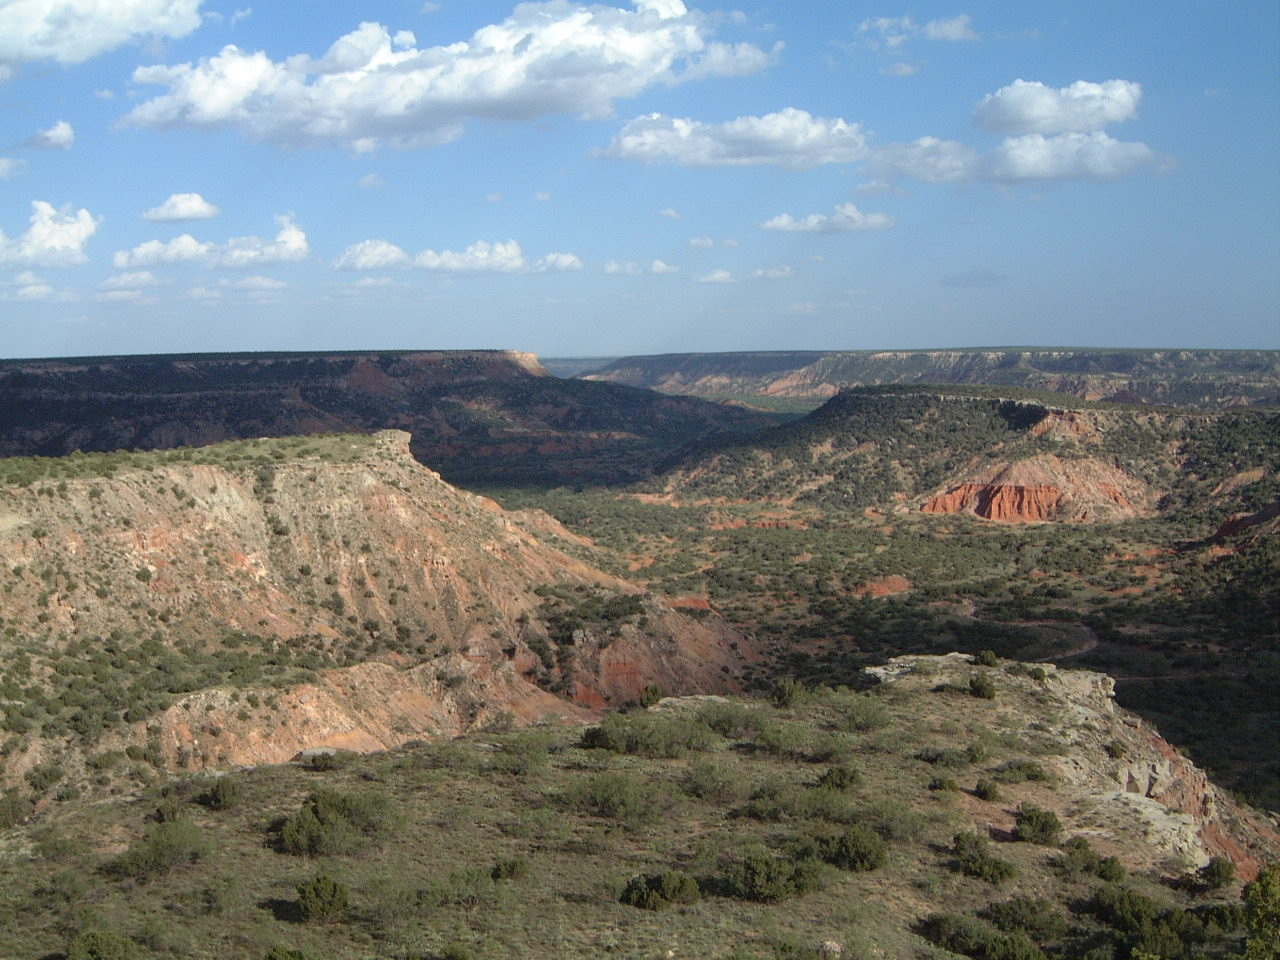 National Parks In Texas-Palo Duro Canyon National Park